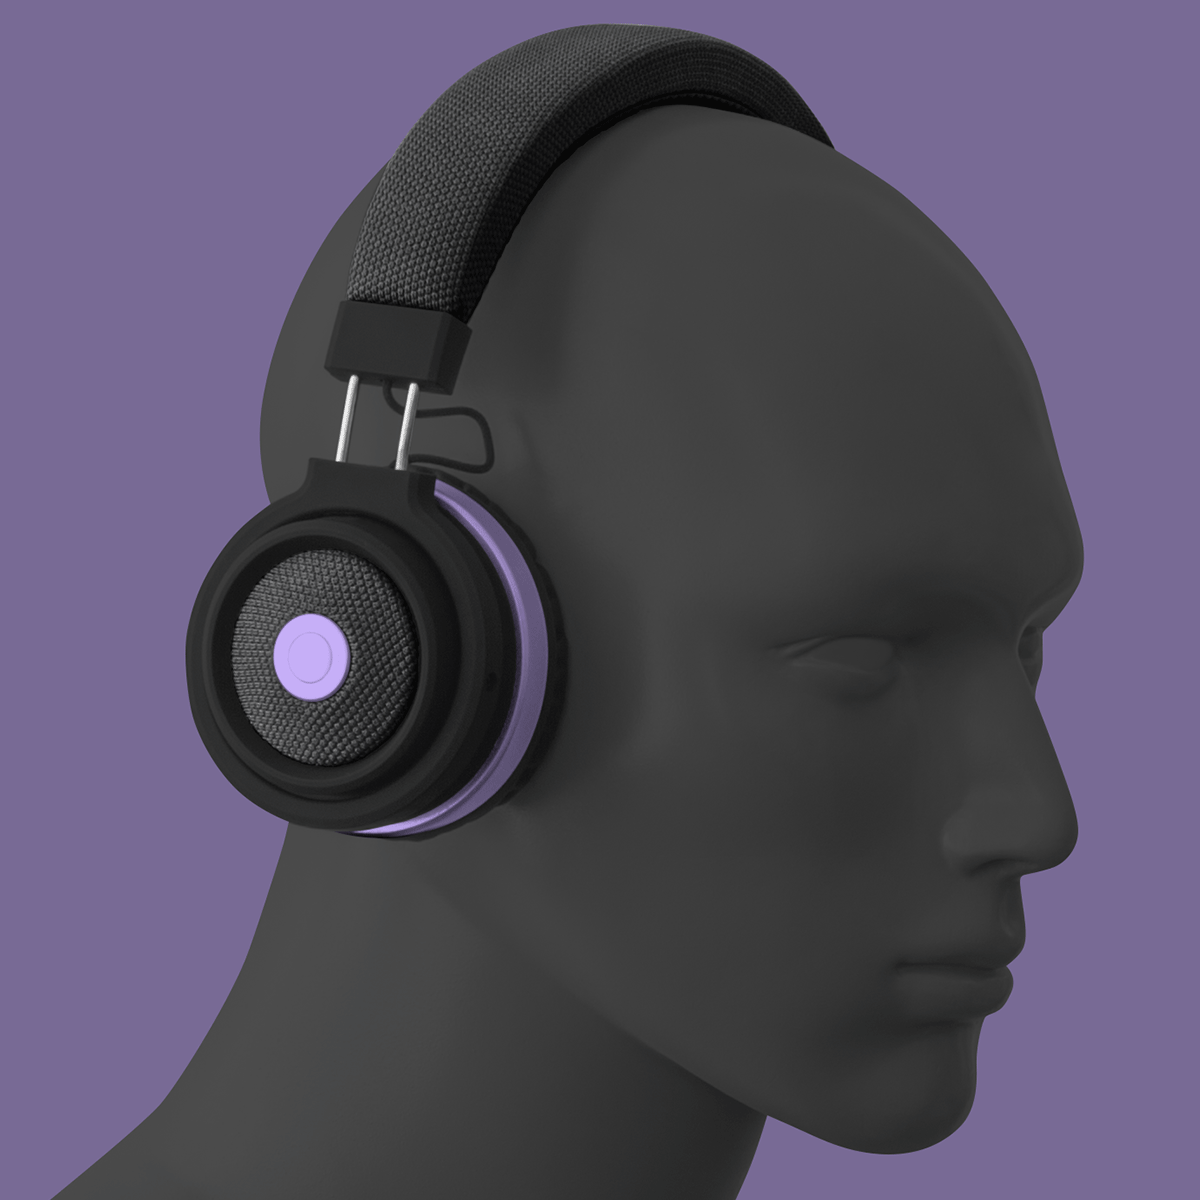 Matador Headphones by IJOY